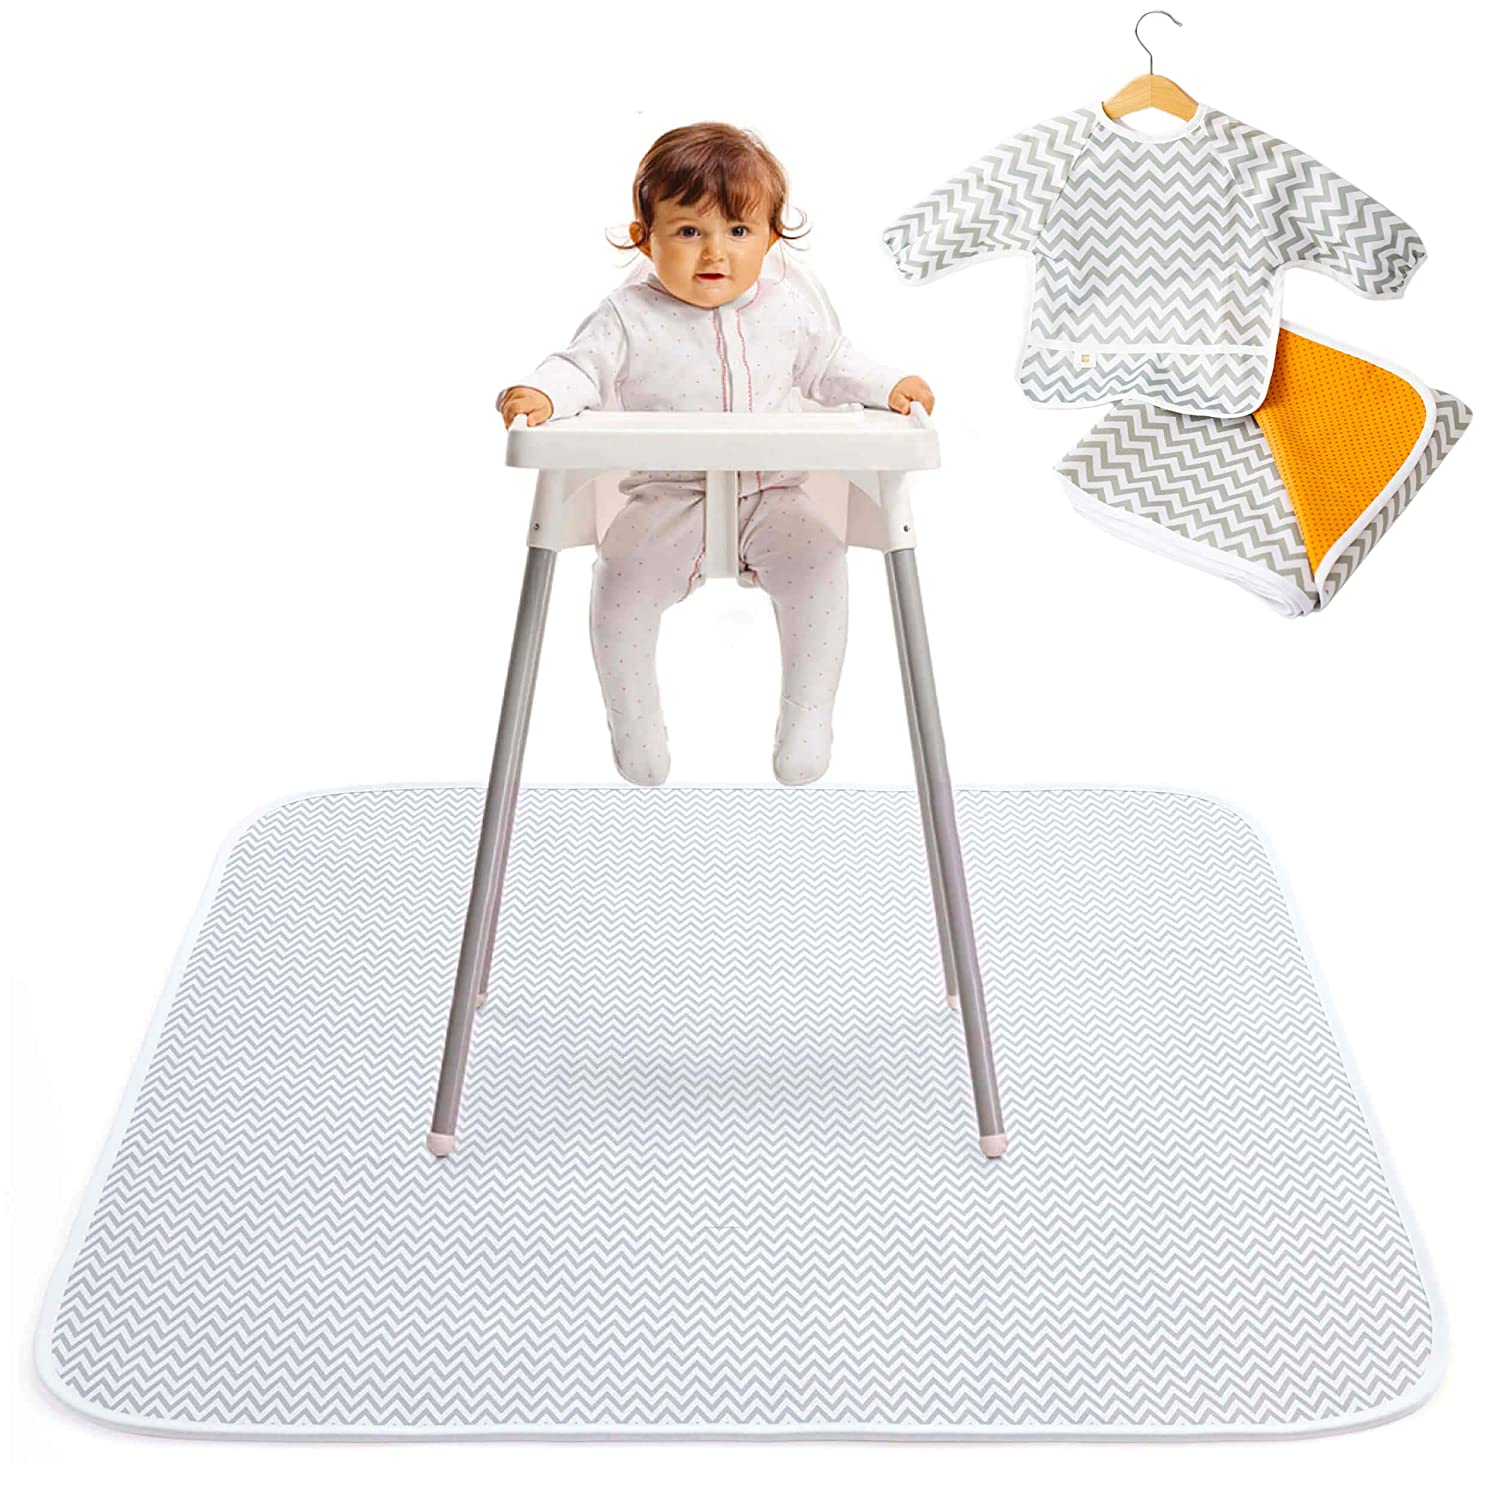 "2-in-1 Waterproof Baby Splat Mat for Under High Chair (51"" x 51"") with Toddler Smock and Weaning Ebook - Large Non-Slip Infant High Chair Mat Food Catcher Protects Floor from Mealtime Messes"